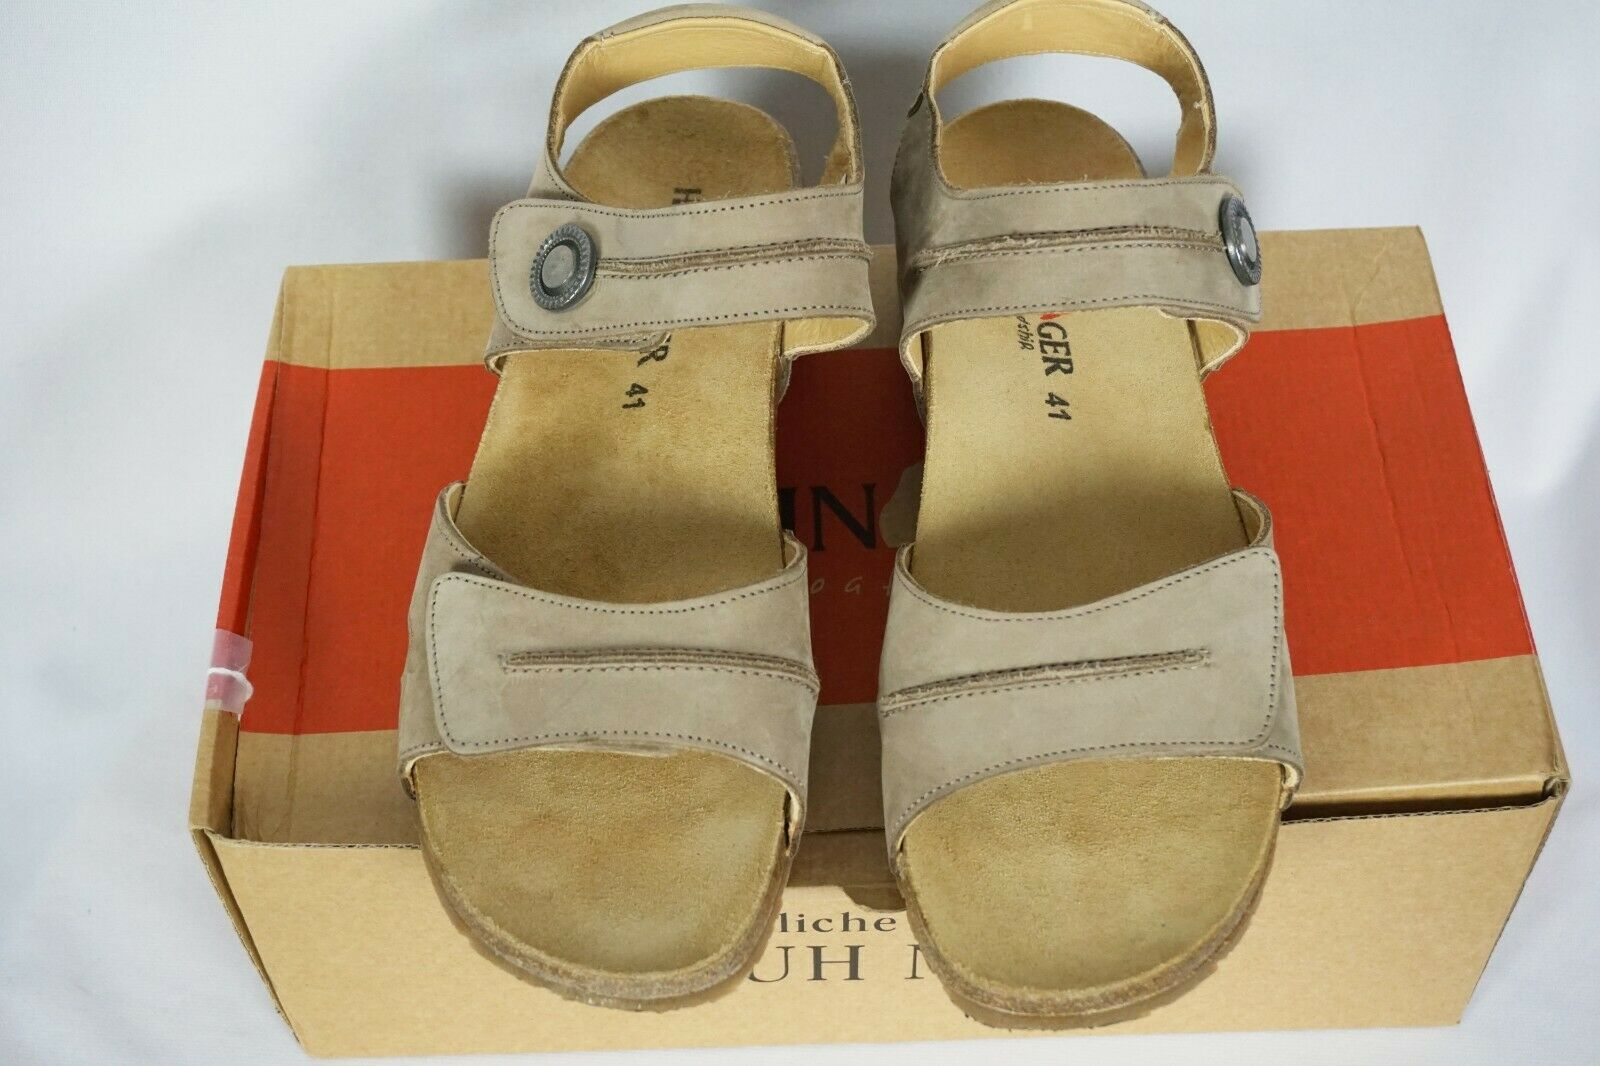 Haflinger Patricia Ankle Strap Sandals in Stone Stone Stone Taupe Sz 41   US 10 10.5 Worn 1X 73effb